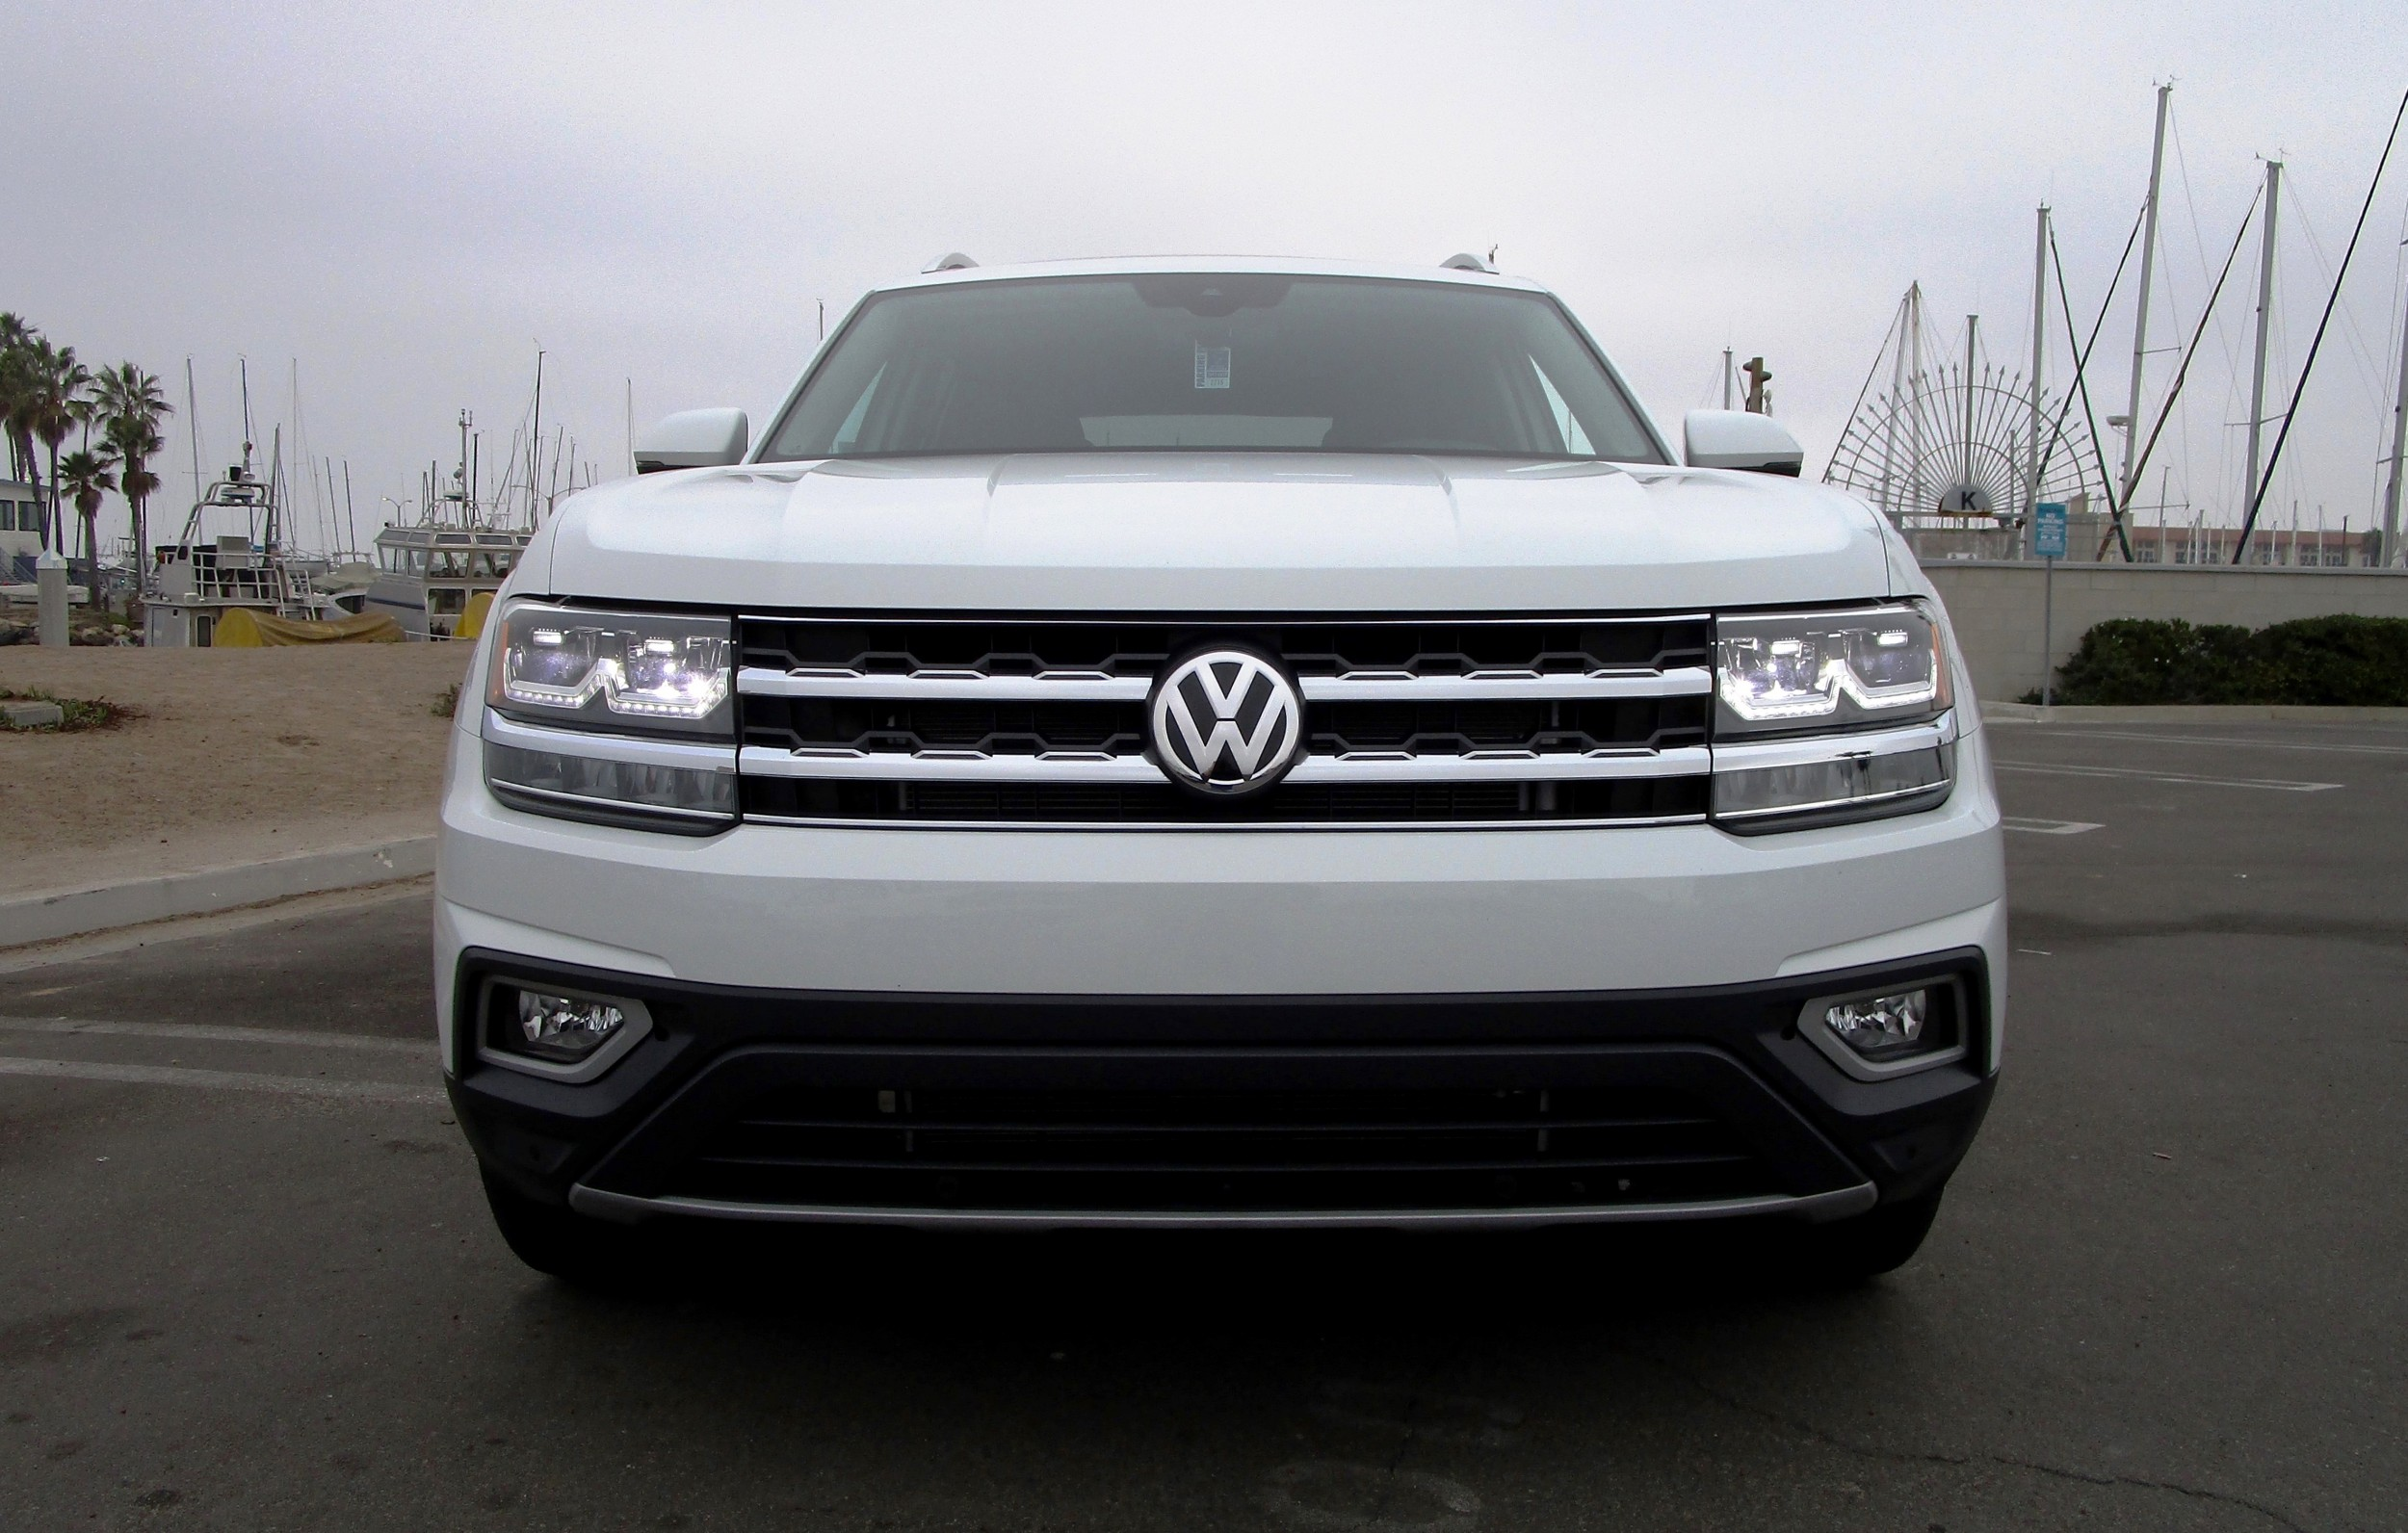 2018 volkswagen atlas v6 4motion road test review by ben lewis. Black Bedroom Furniture Sets. Home Design Ideas